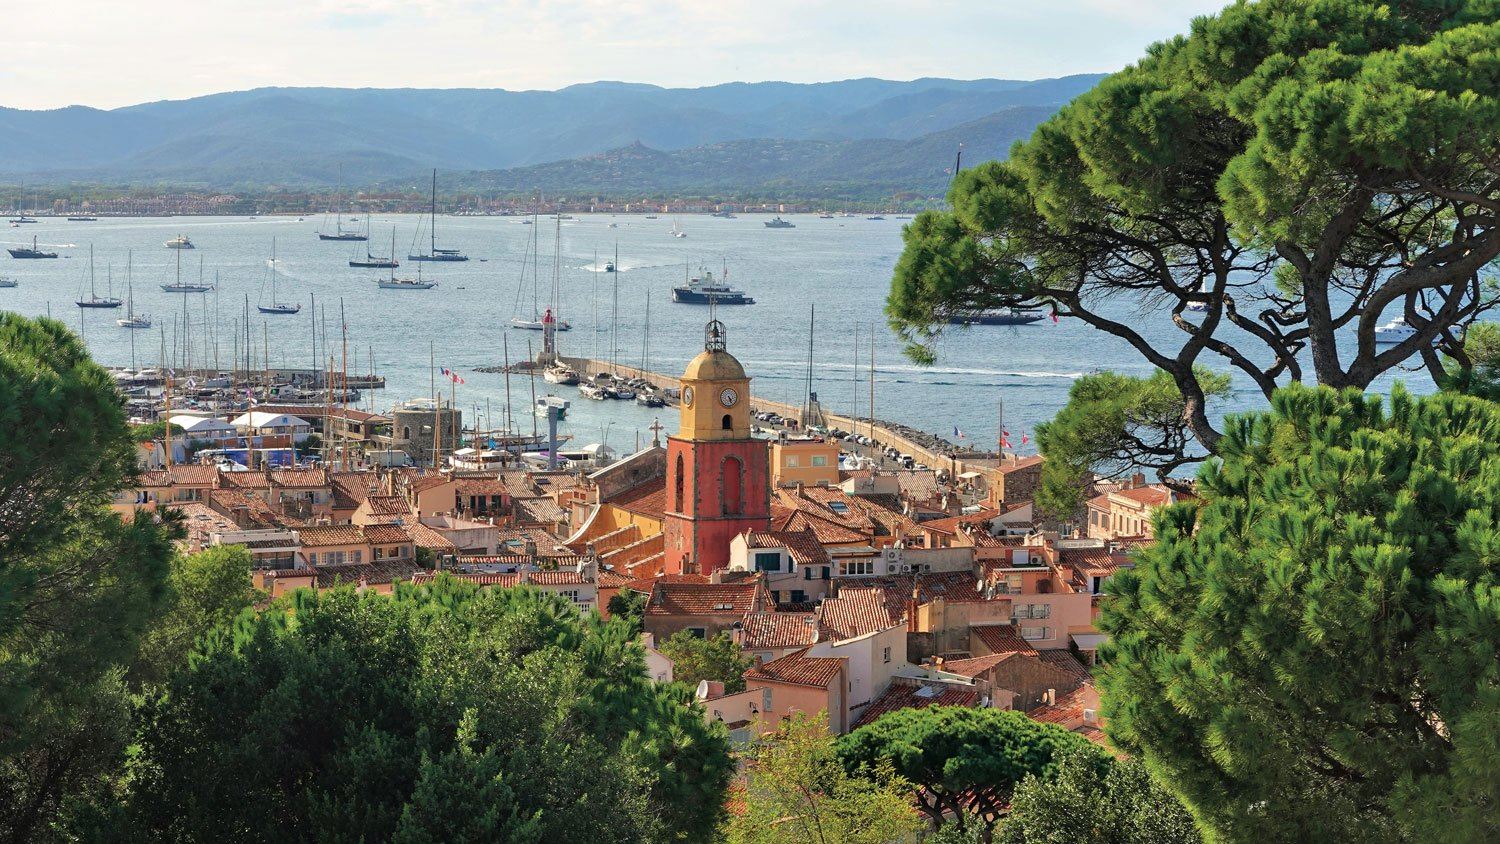 View of the city of St. Tropez from the Citadel featuring the iconic bell tower of the Church of St. Tropez.